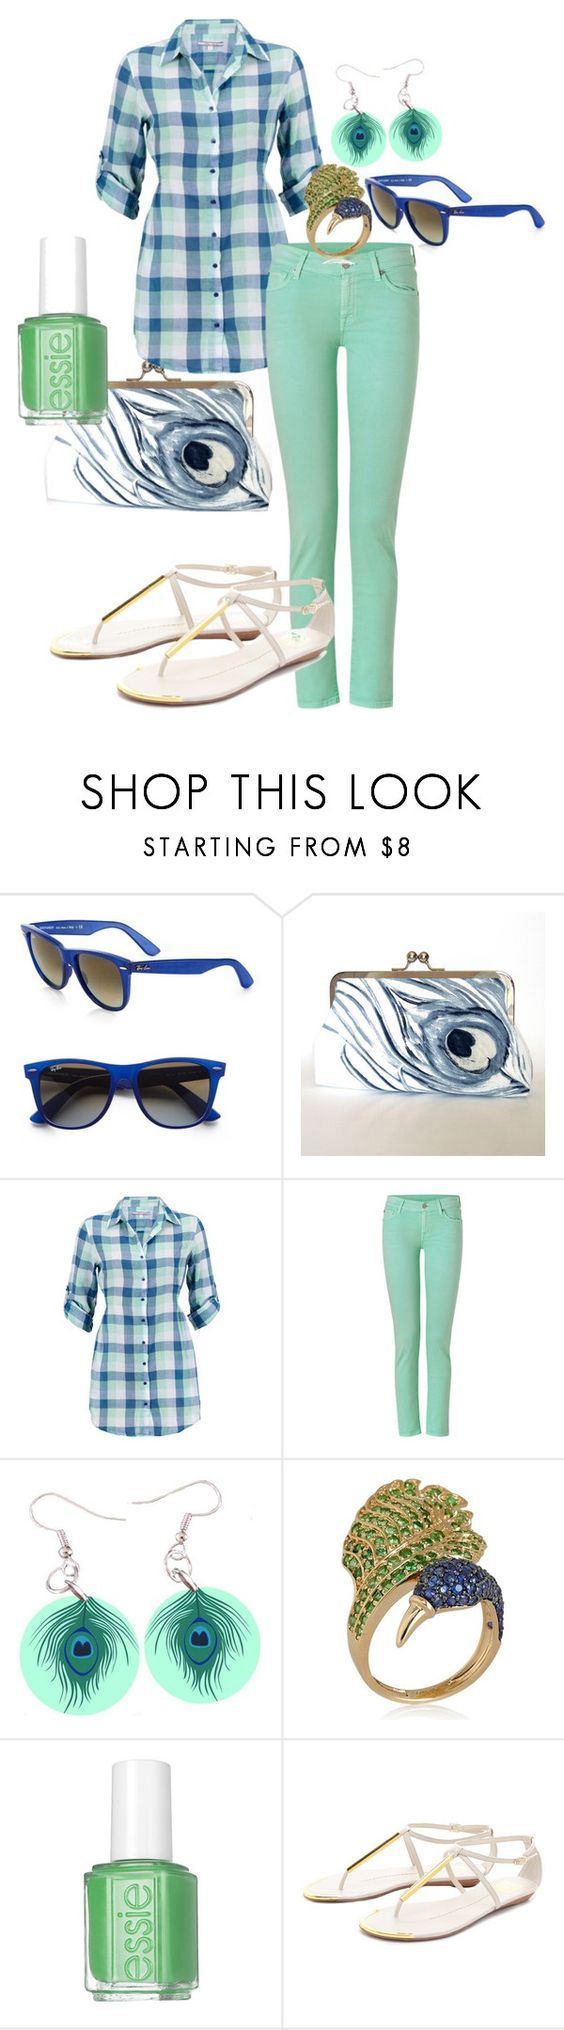 """Peacock Plaid"" by jetpuppy14 ❤ liked on Polyvore featuring Ray-Ban, Silvian Heach, 7 For All Mankind, Paul Brodie, Essie and Dolce Vita"